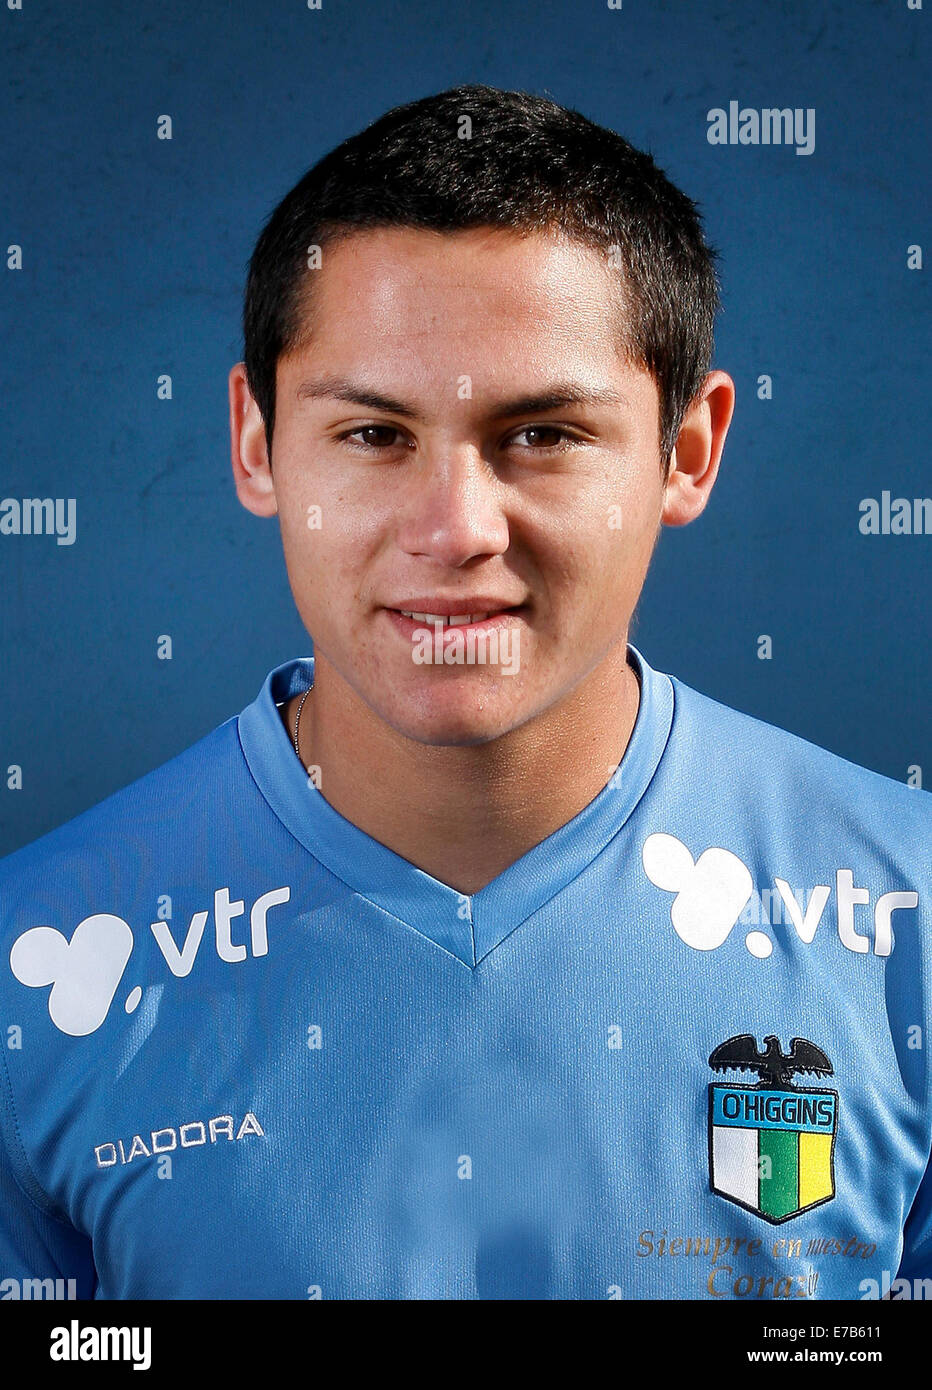 Chile Football League Serie A / ( Club Deportivo O'Higgins ) - Juan Fuentes - chile-football-league-serie-a-club-deportivo-ohiggins-juan-fuentes-E7B611